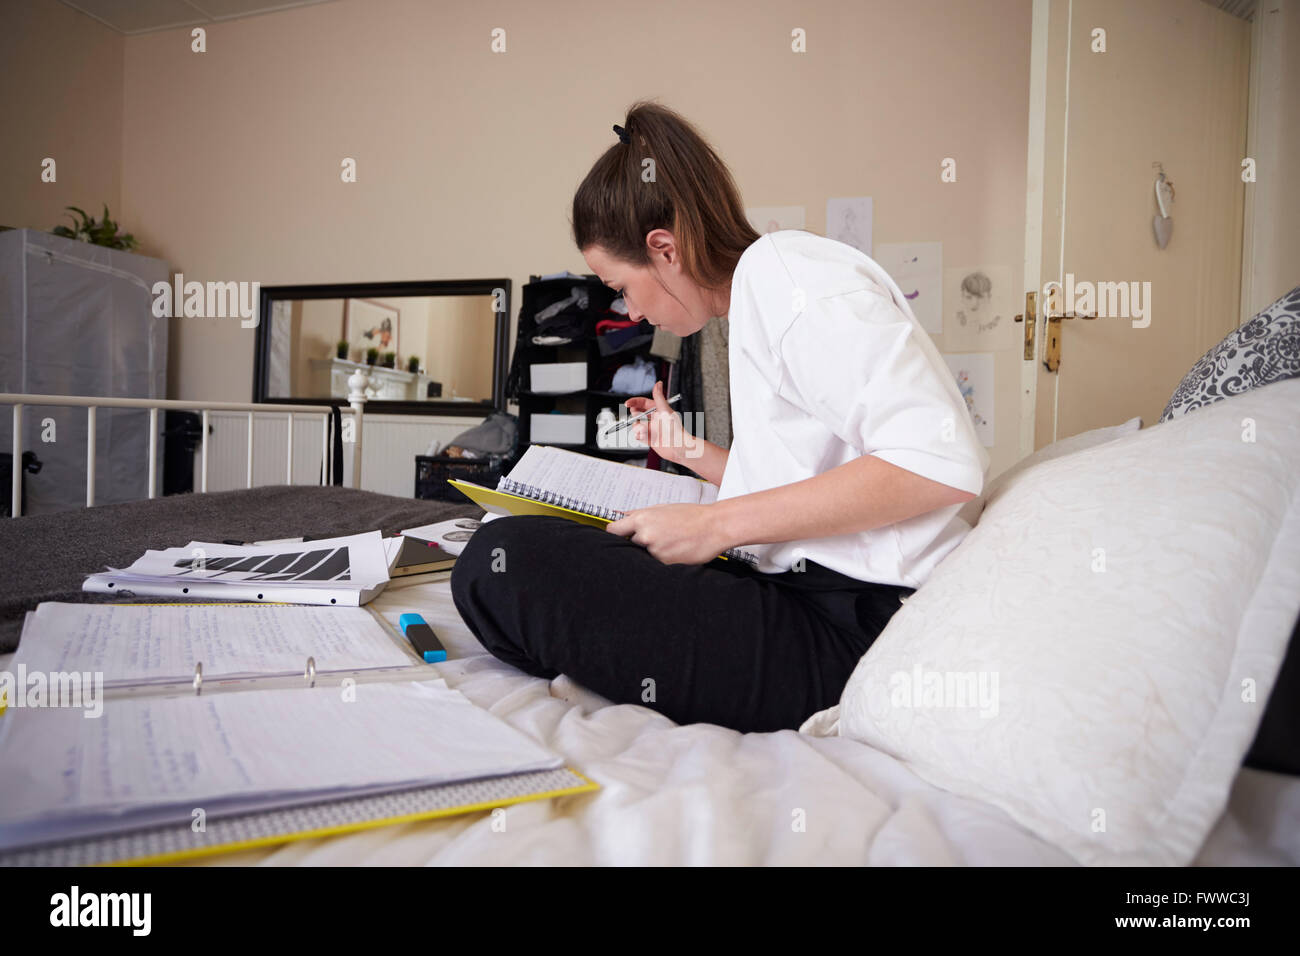 Female Student Working On Studies In Bedroom - Stock Image